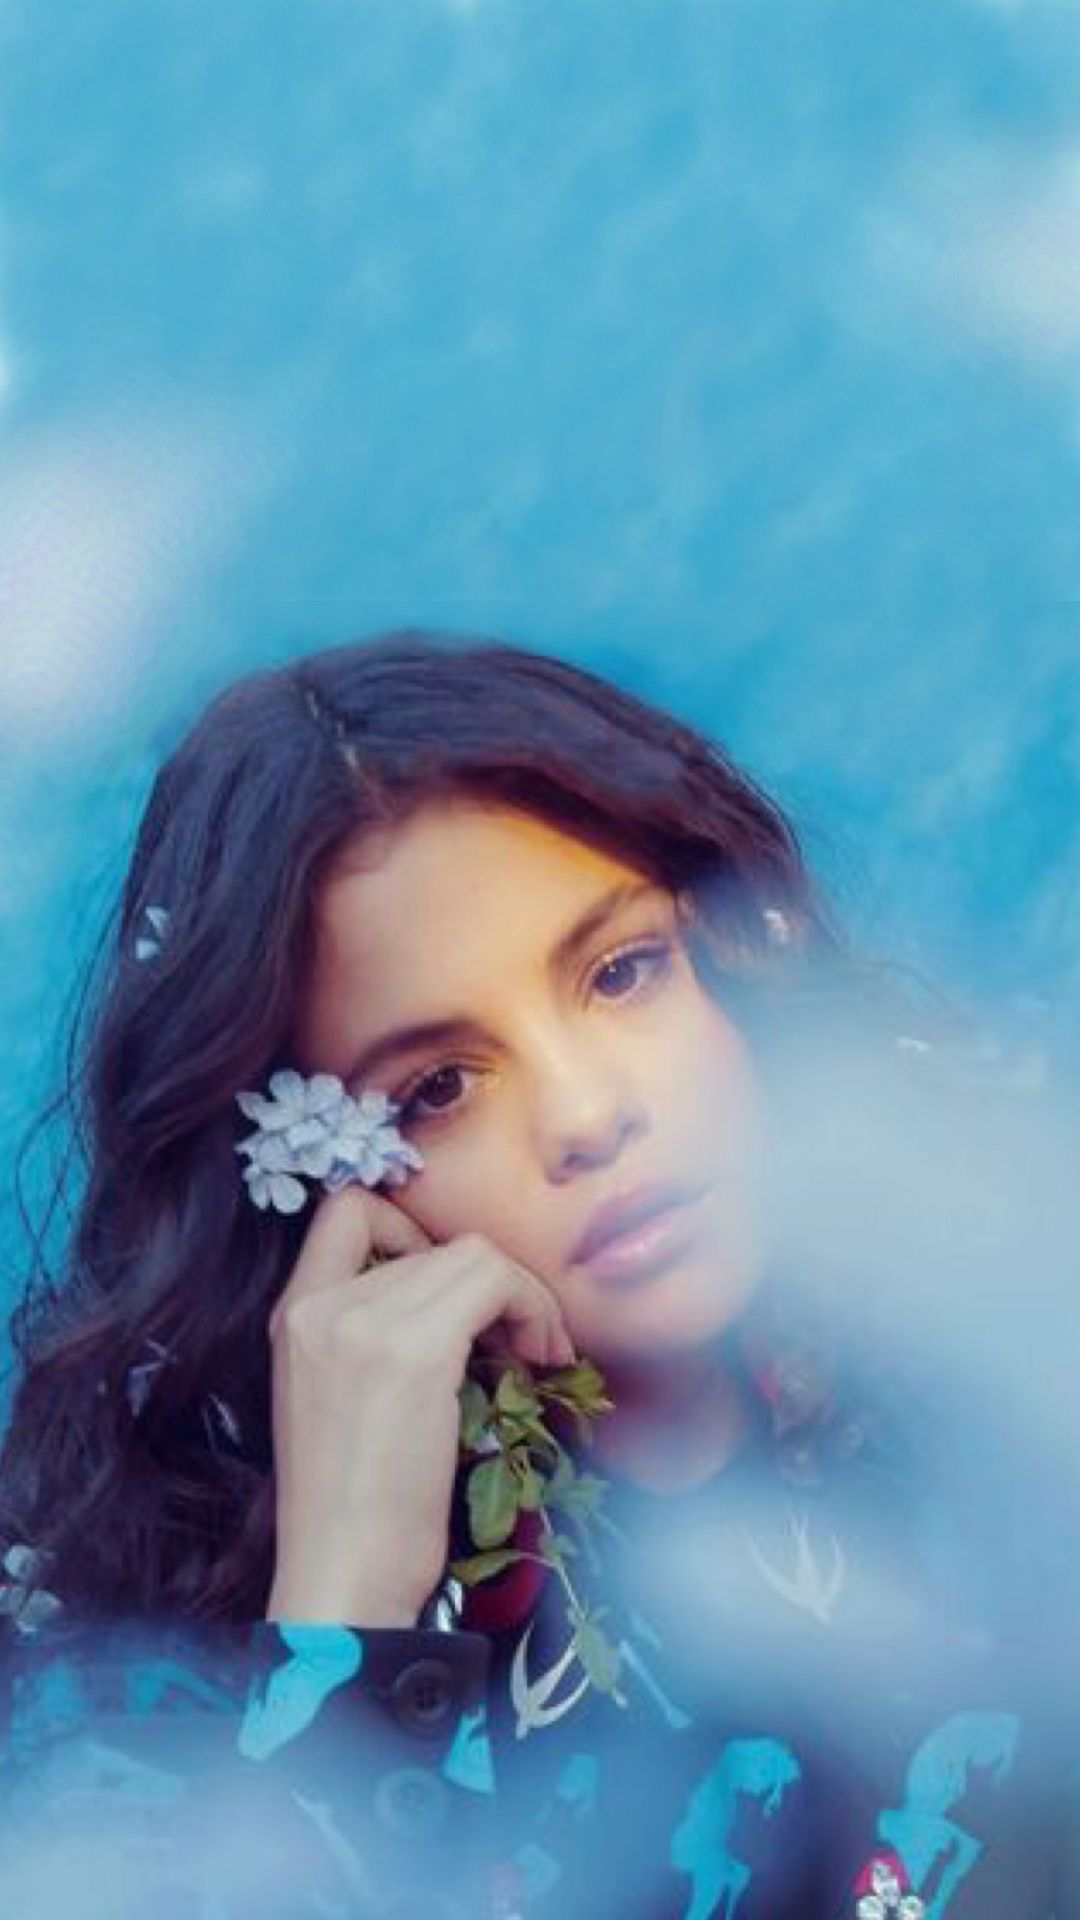 Wallpaper For Those With Iphone 6 6s And 7 I Haven T Tried Any Of These On Other Phones But You Selena Gomez Photoshoot Selena Gomez Selena Gomez Photos